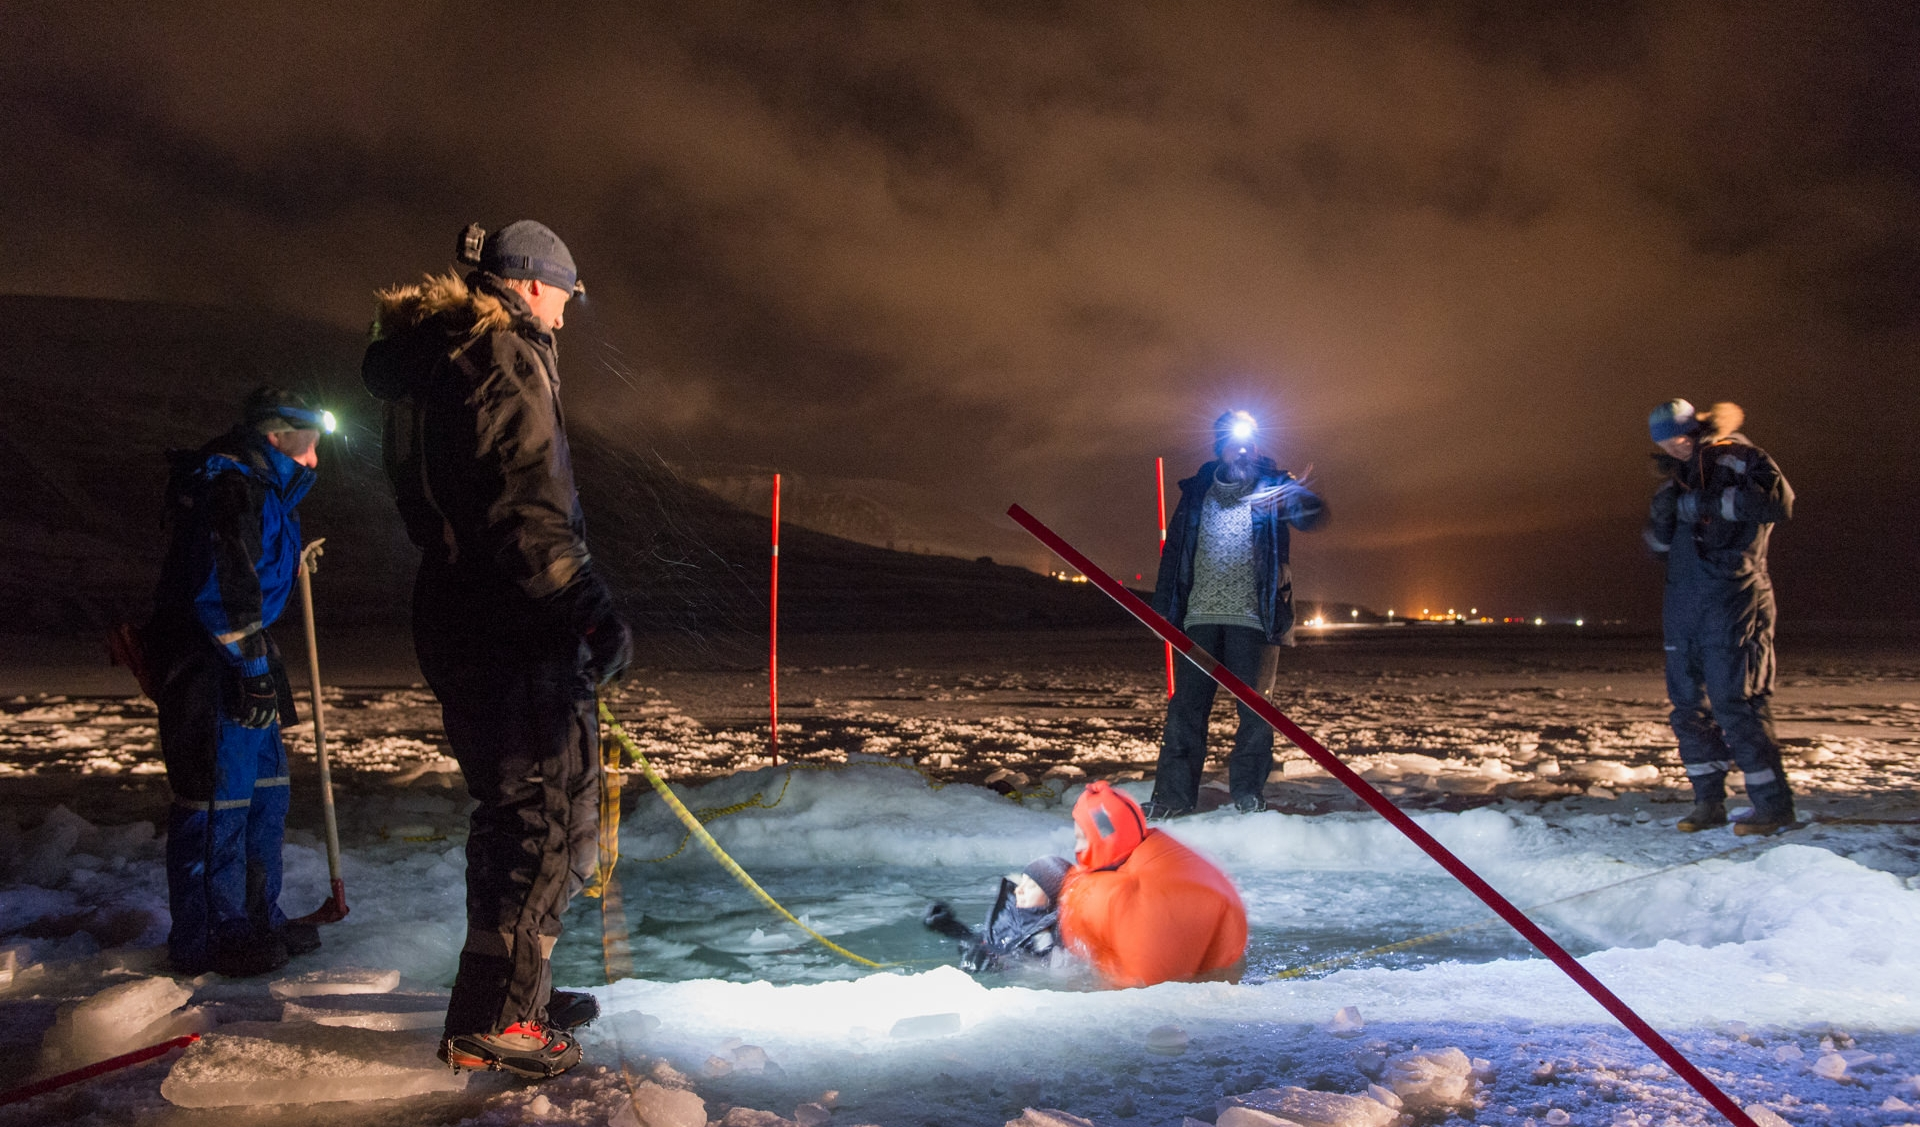 Every year, UNIS educates hundreds of students in Arctic safety. As part of the winter field safety course, students must swim through ice-filled water and manage to get back up onto the sea ice again. Photo: Frede Lamo / UNIS